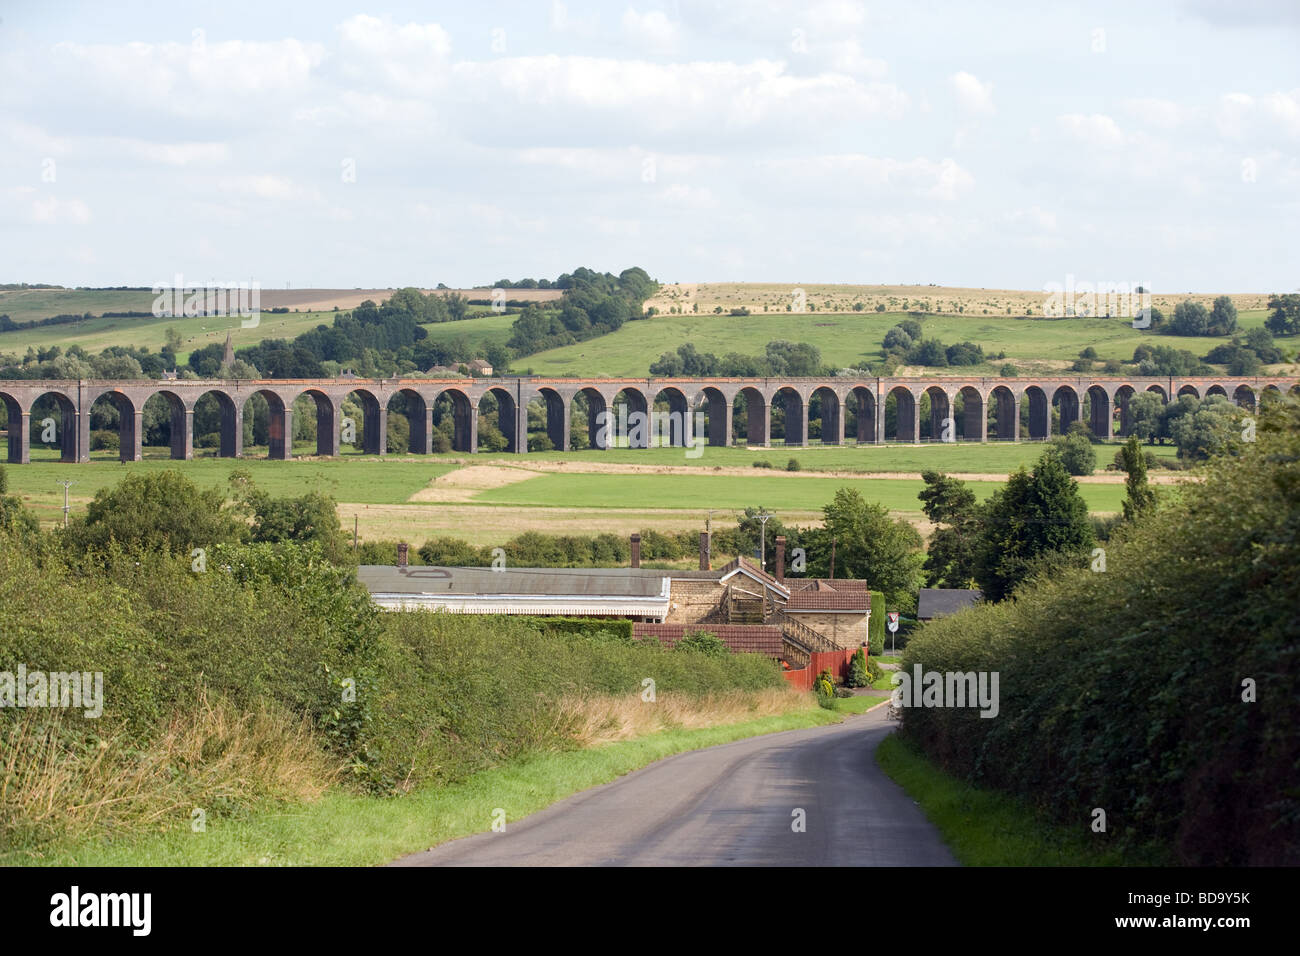 Britain's longest Railway Viaduct at Harringworth which crosses the welland valley between Rutland & Northamptonshire - Stock Image